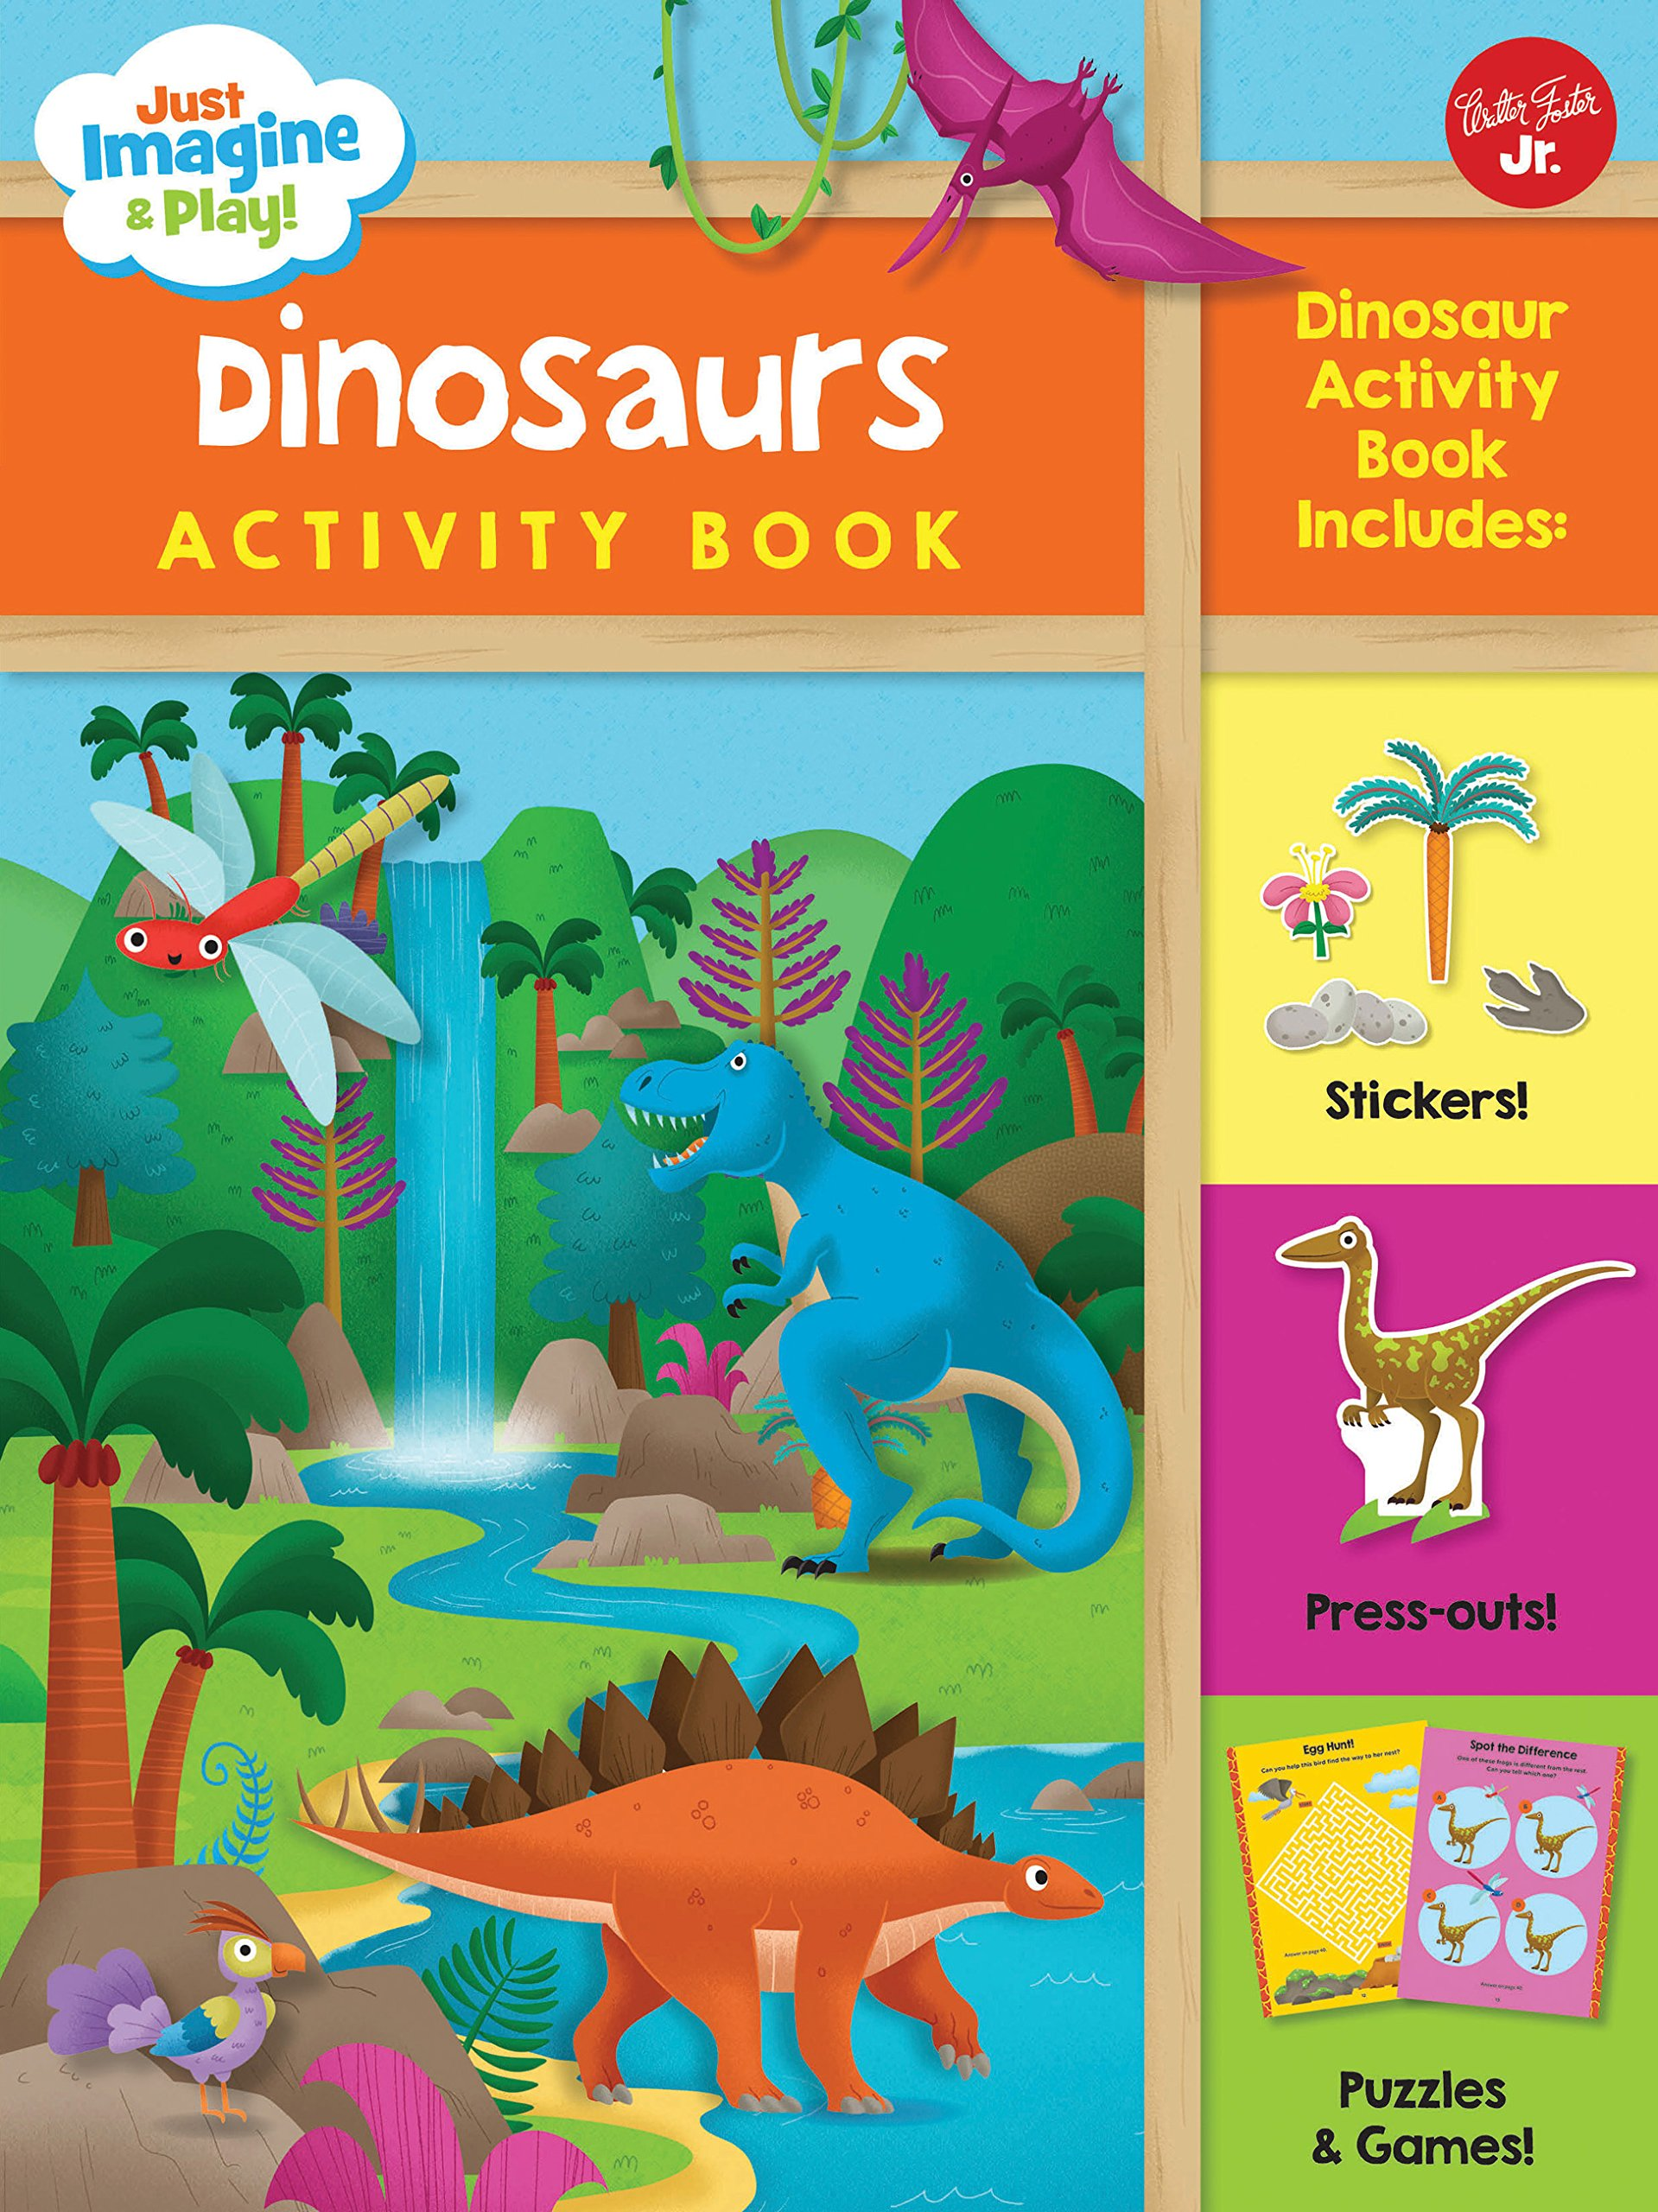 Just Imagine & Play! Dinosaurs Activity Book: Dinosaur Activity Book Includes: Stickers! Press-Outs! Puzzles & Games! ebook